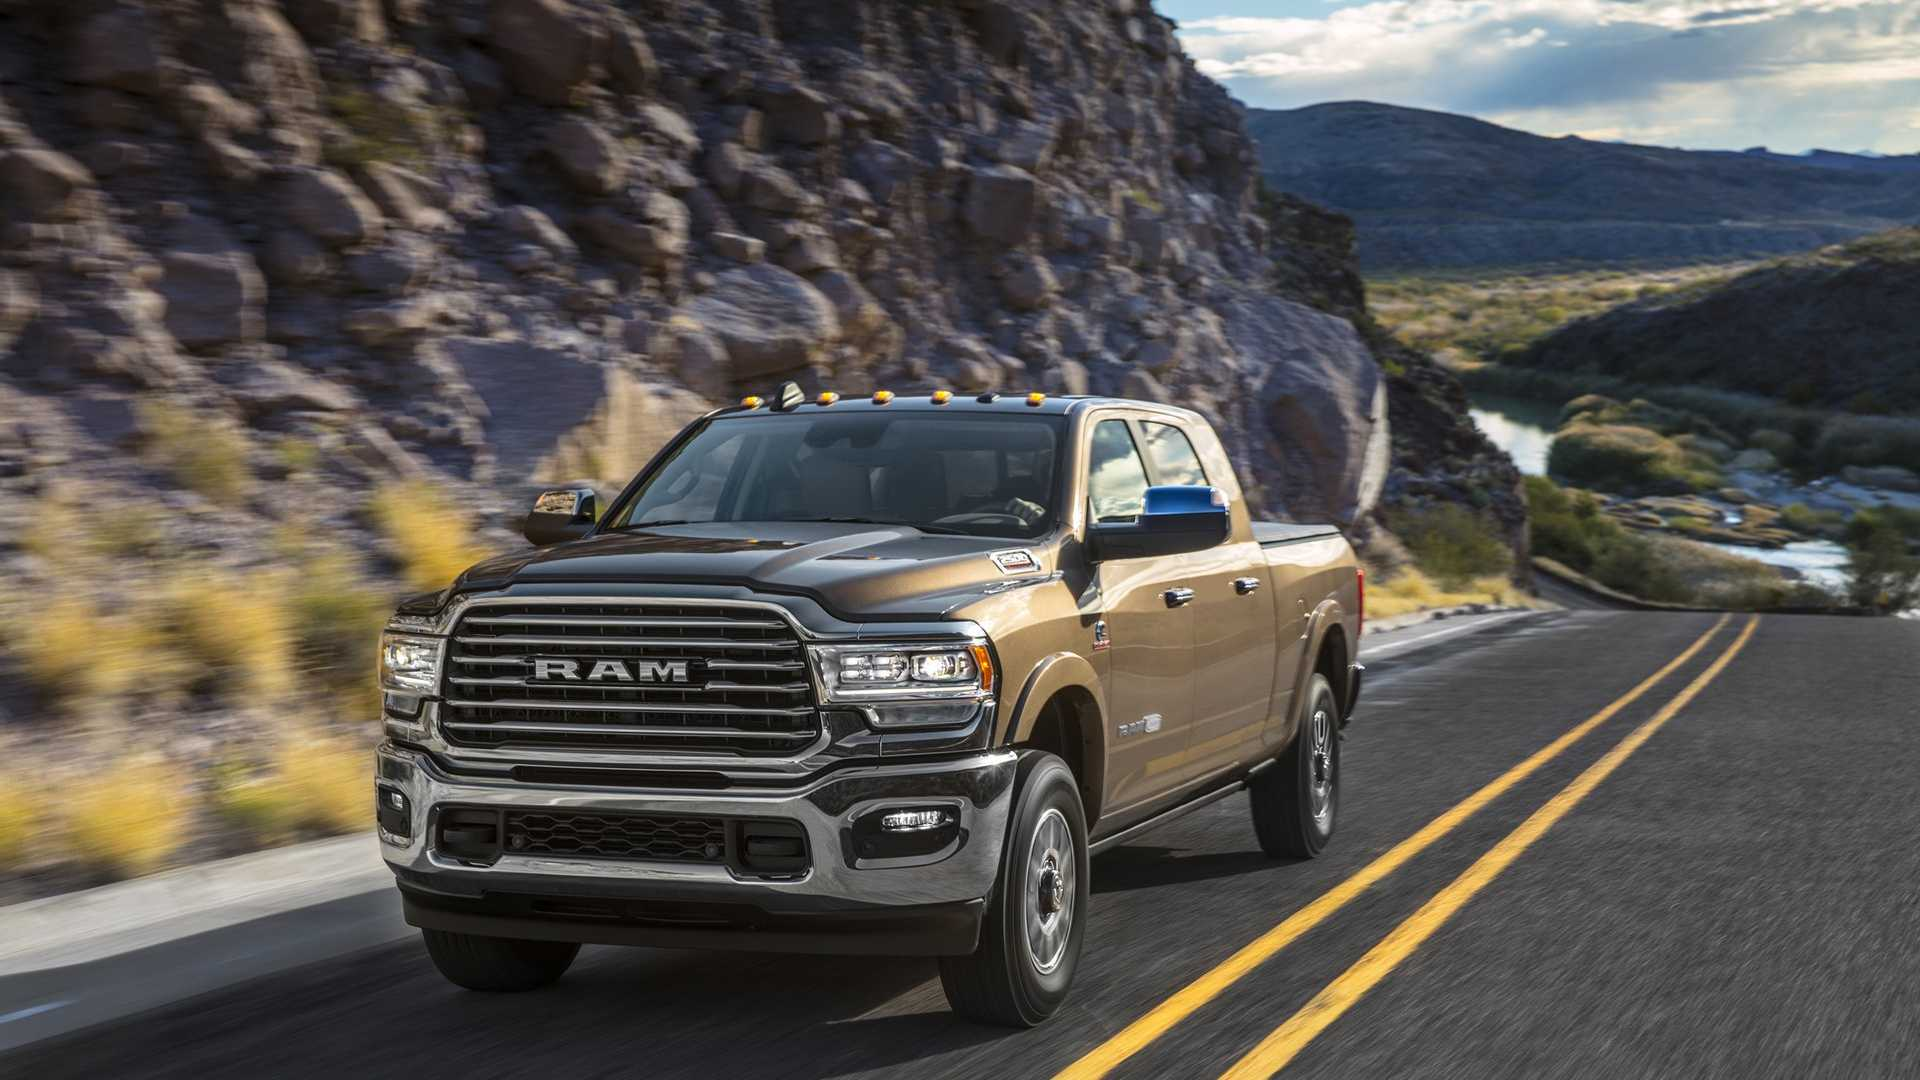 2019 Ram HD Sport Package Showcased At Boston Auto Show - autoevolution